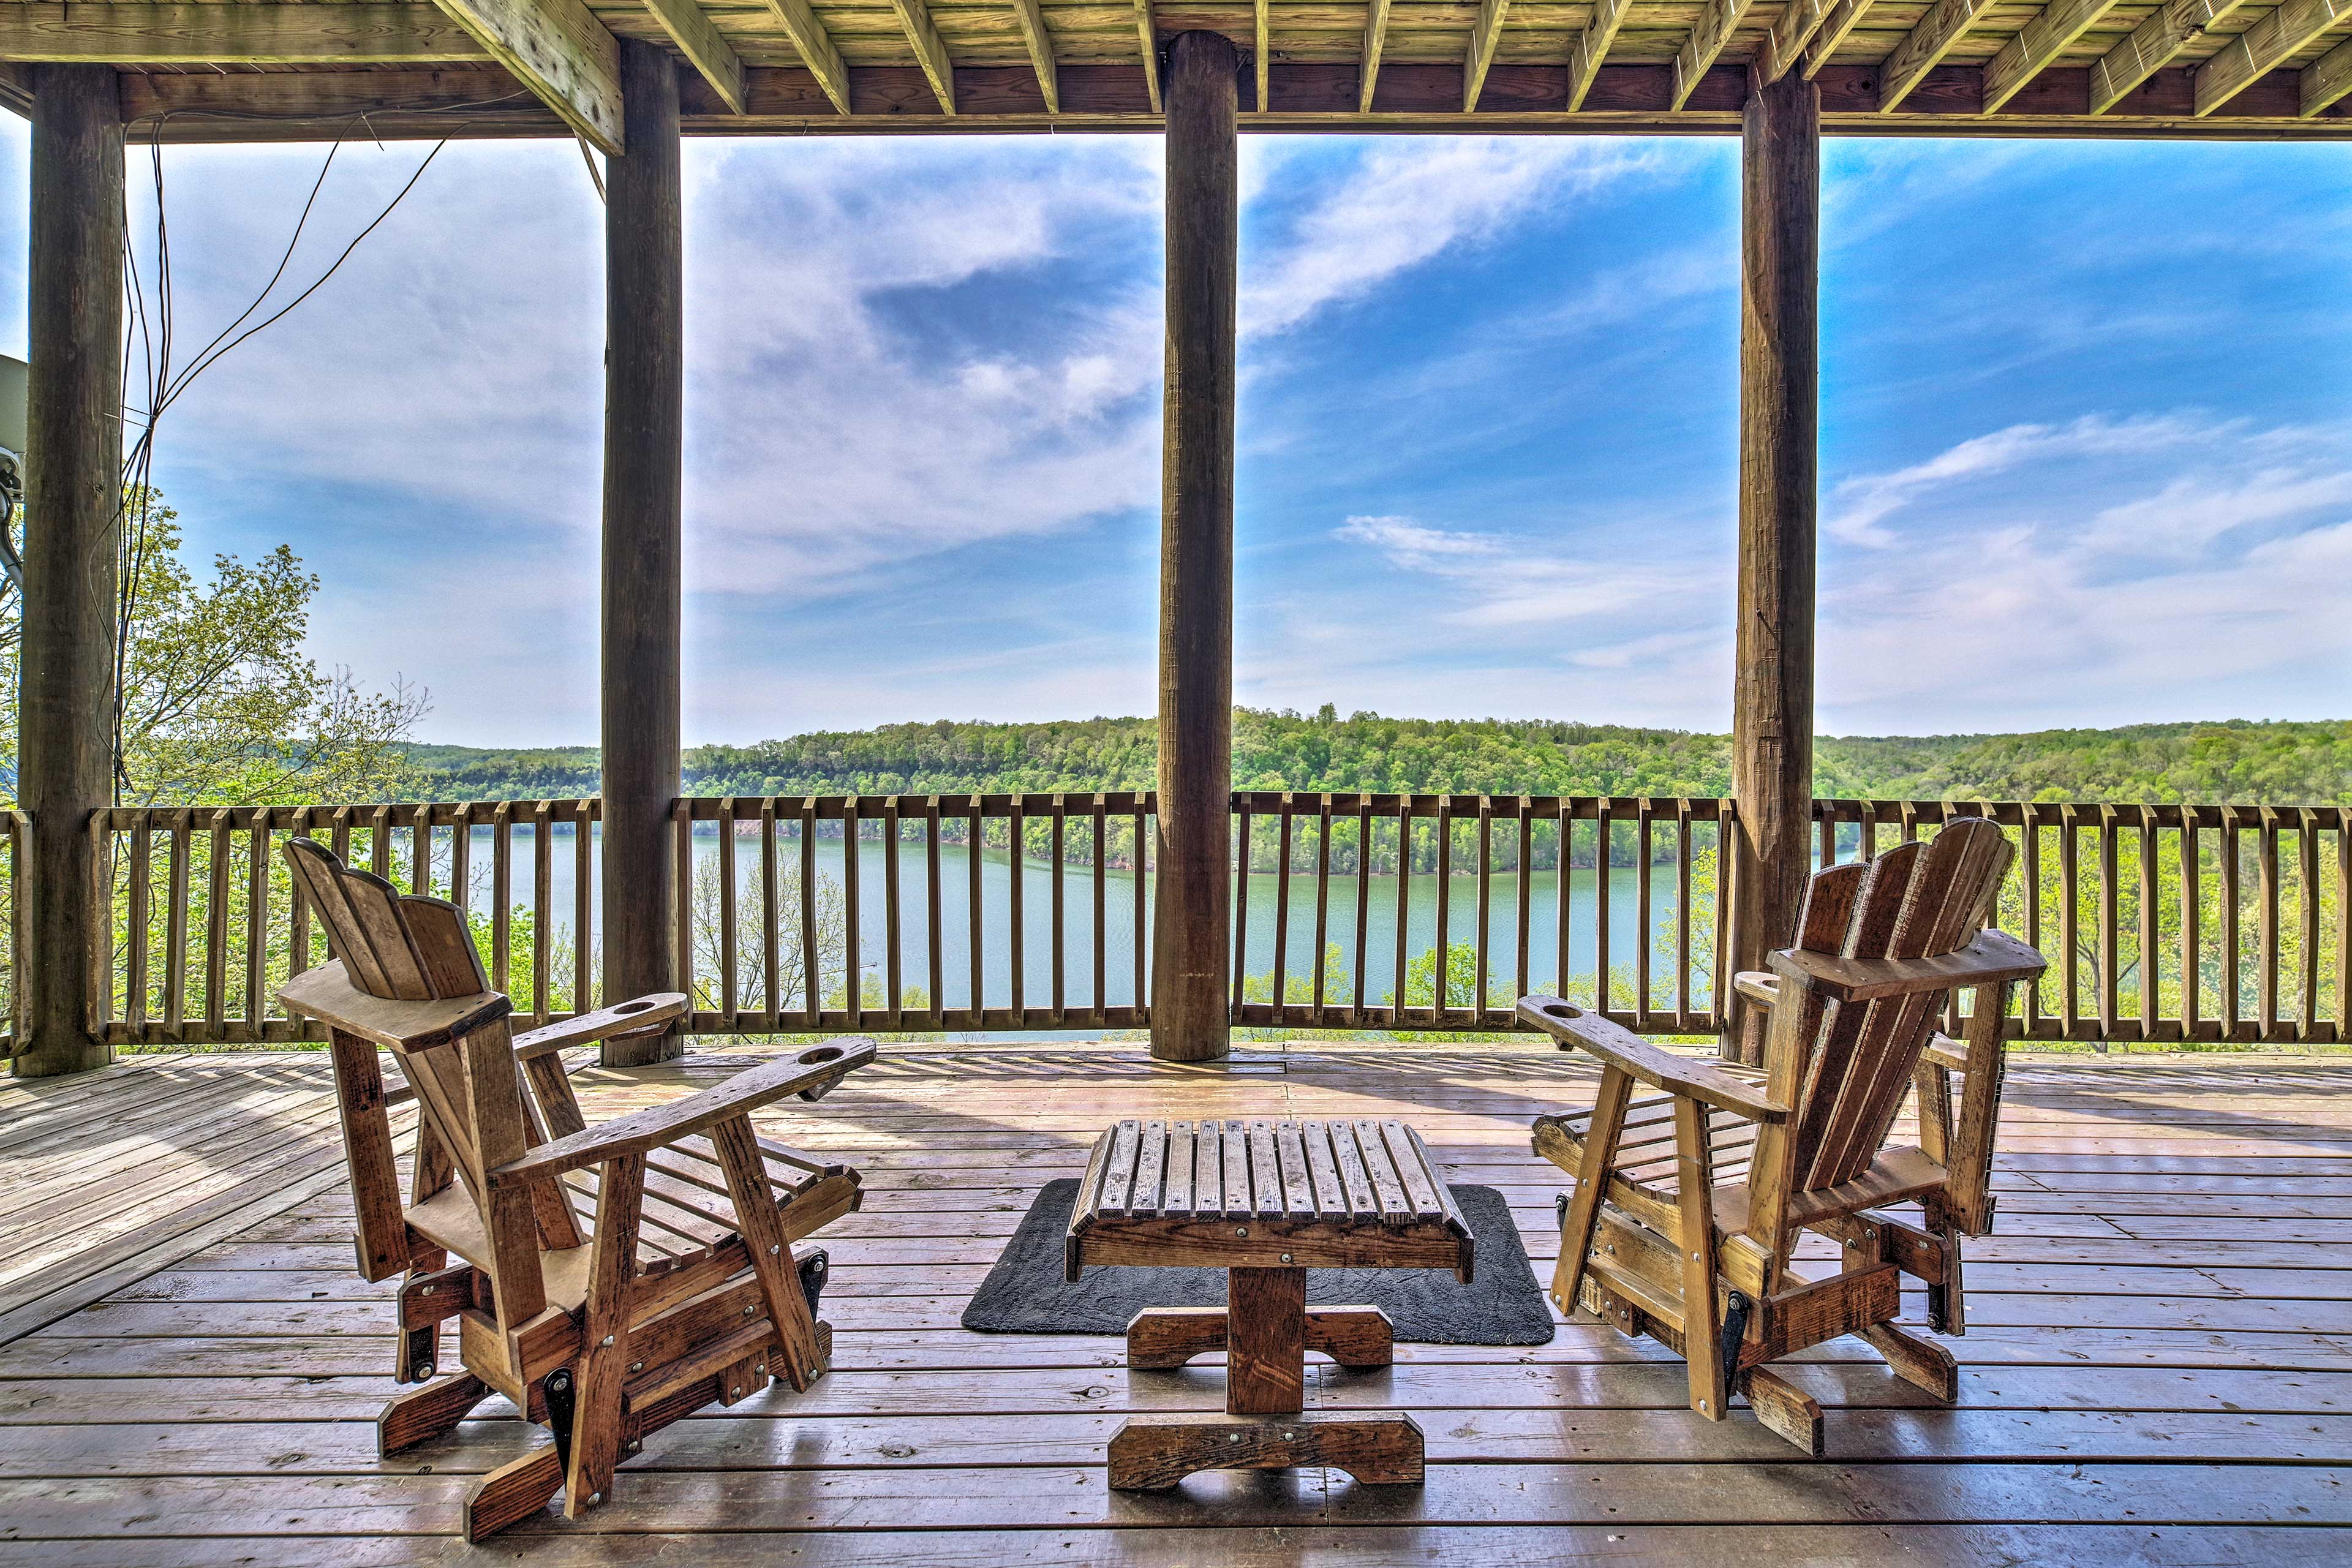 Bring along your family & fishing gear for a stay at this vacation rental cabin!